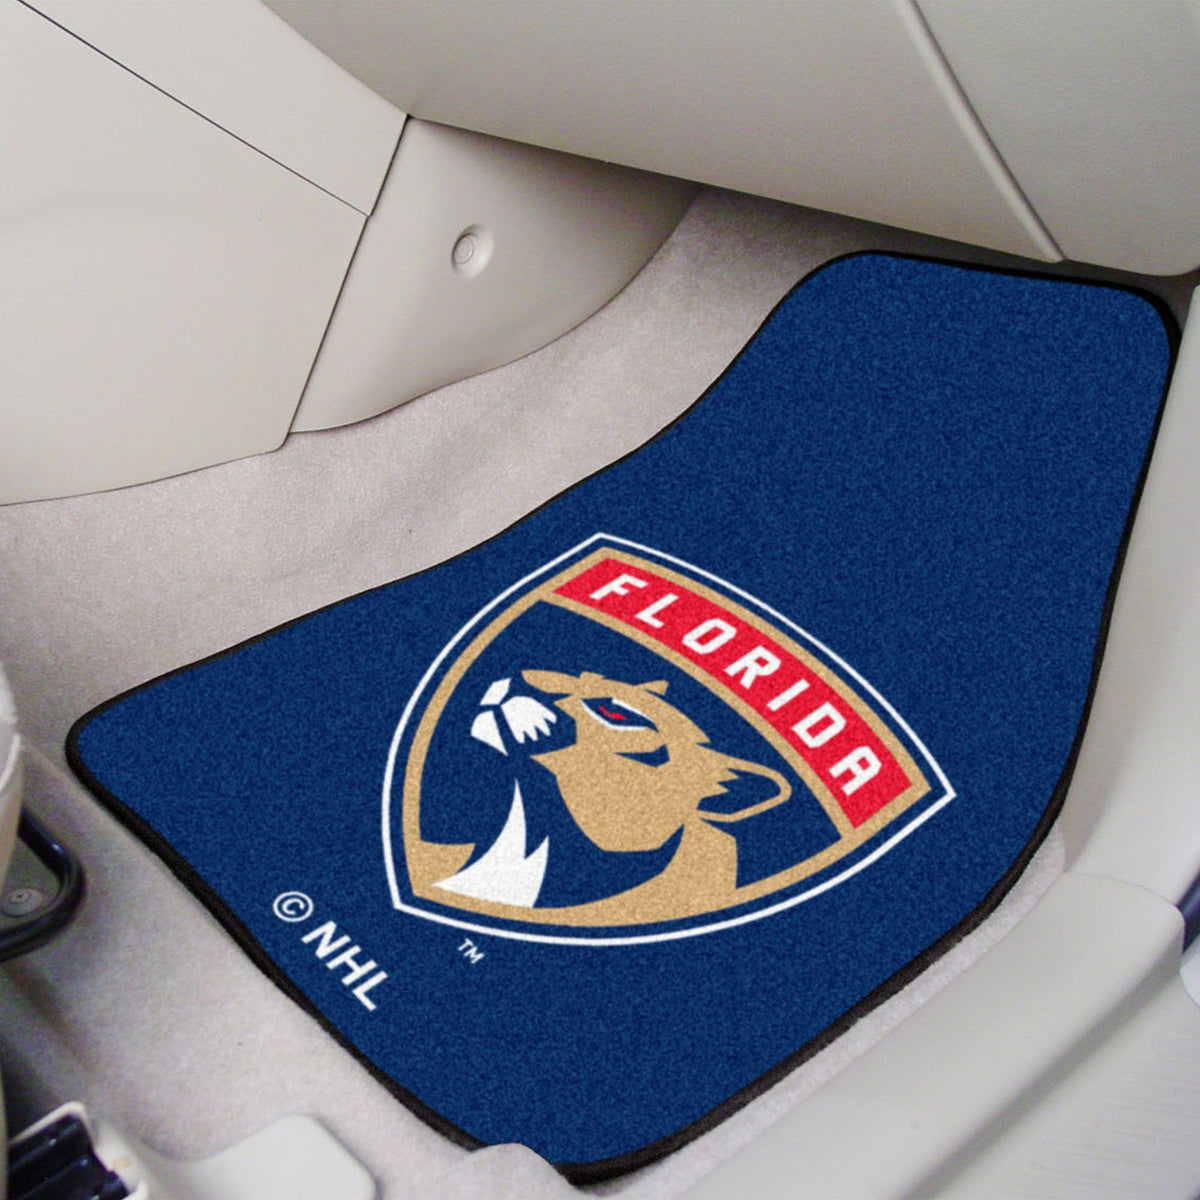 NHL - Carpet Car Mat, 2-Piece Set NHL Mats, Front Car Mats, 2-pc Carpet Car Mat Set, NHL, Auto Fan Mats Florida Panthers